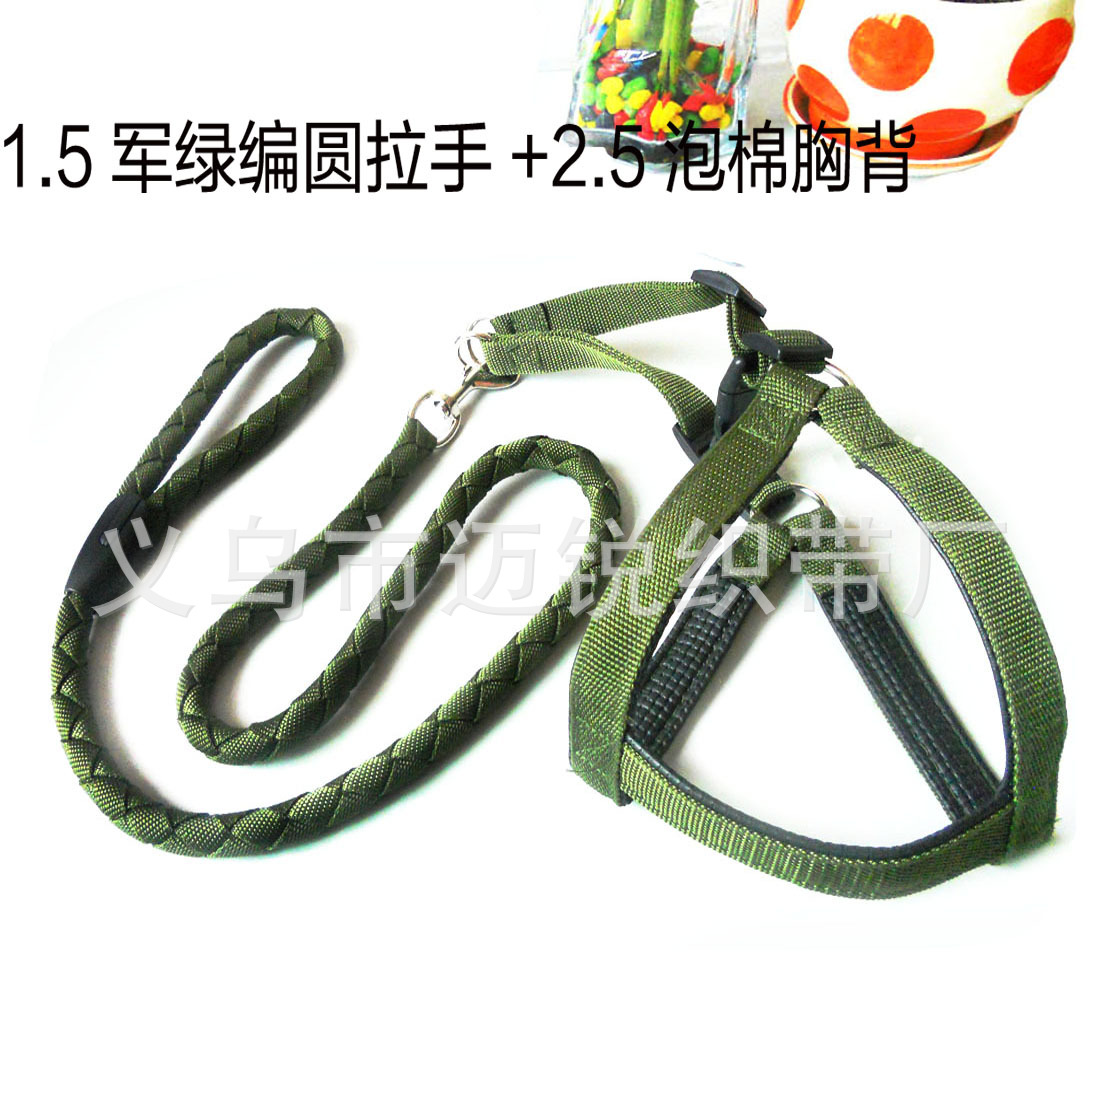 High Quality Large Dog 1.5 Series Army Green Yuan La Shou I Foam Xiong Bei Tao Pet Traction Rope